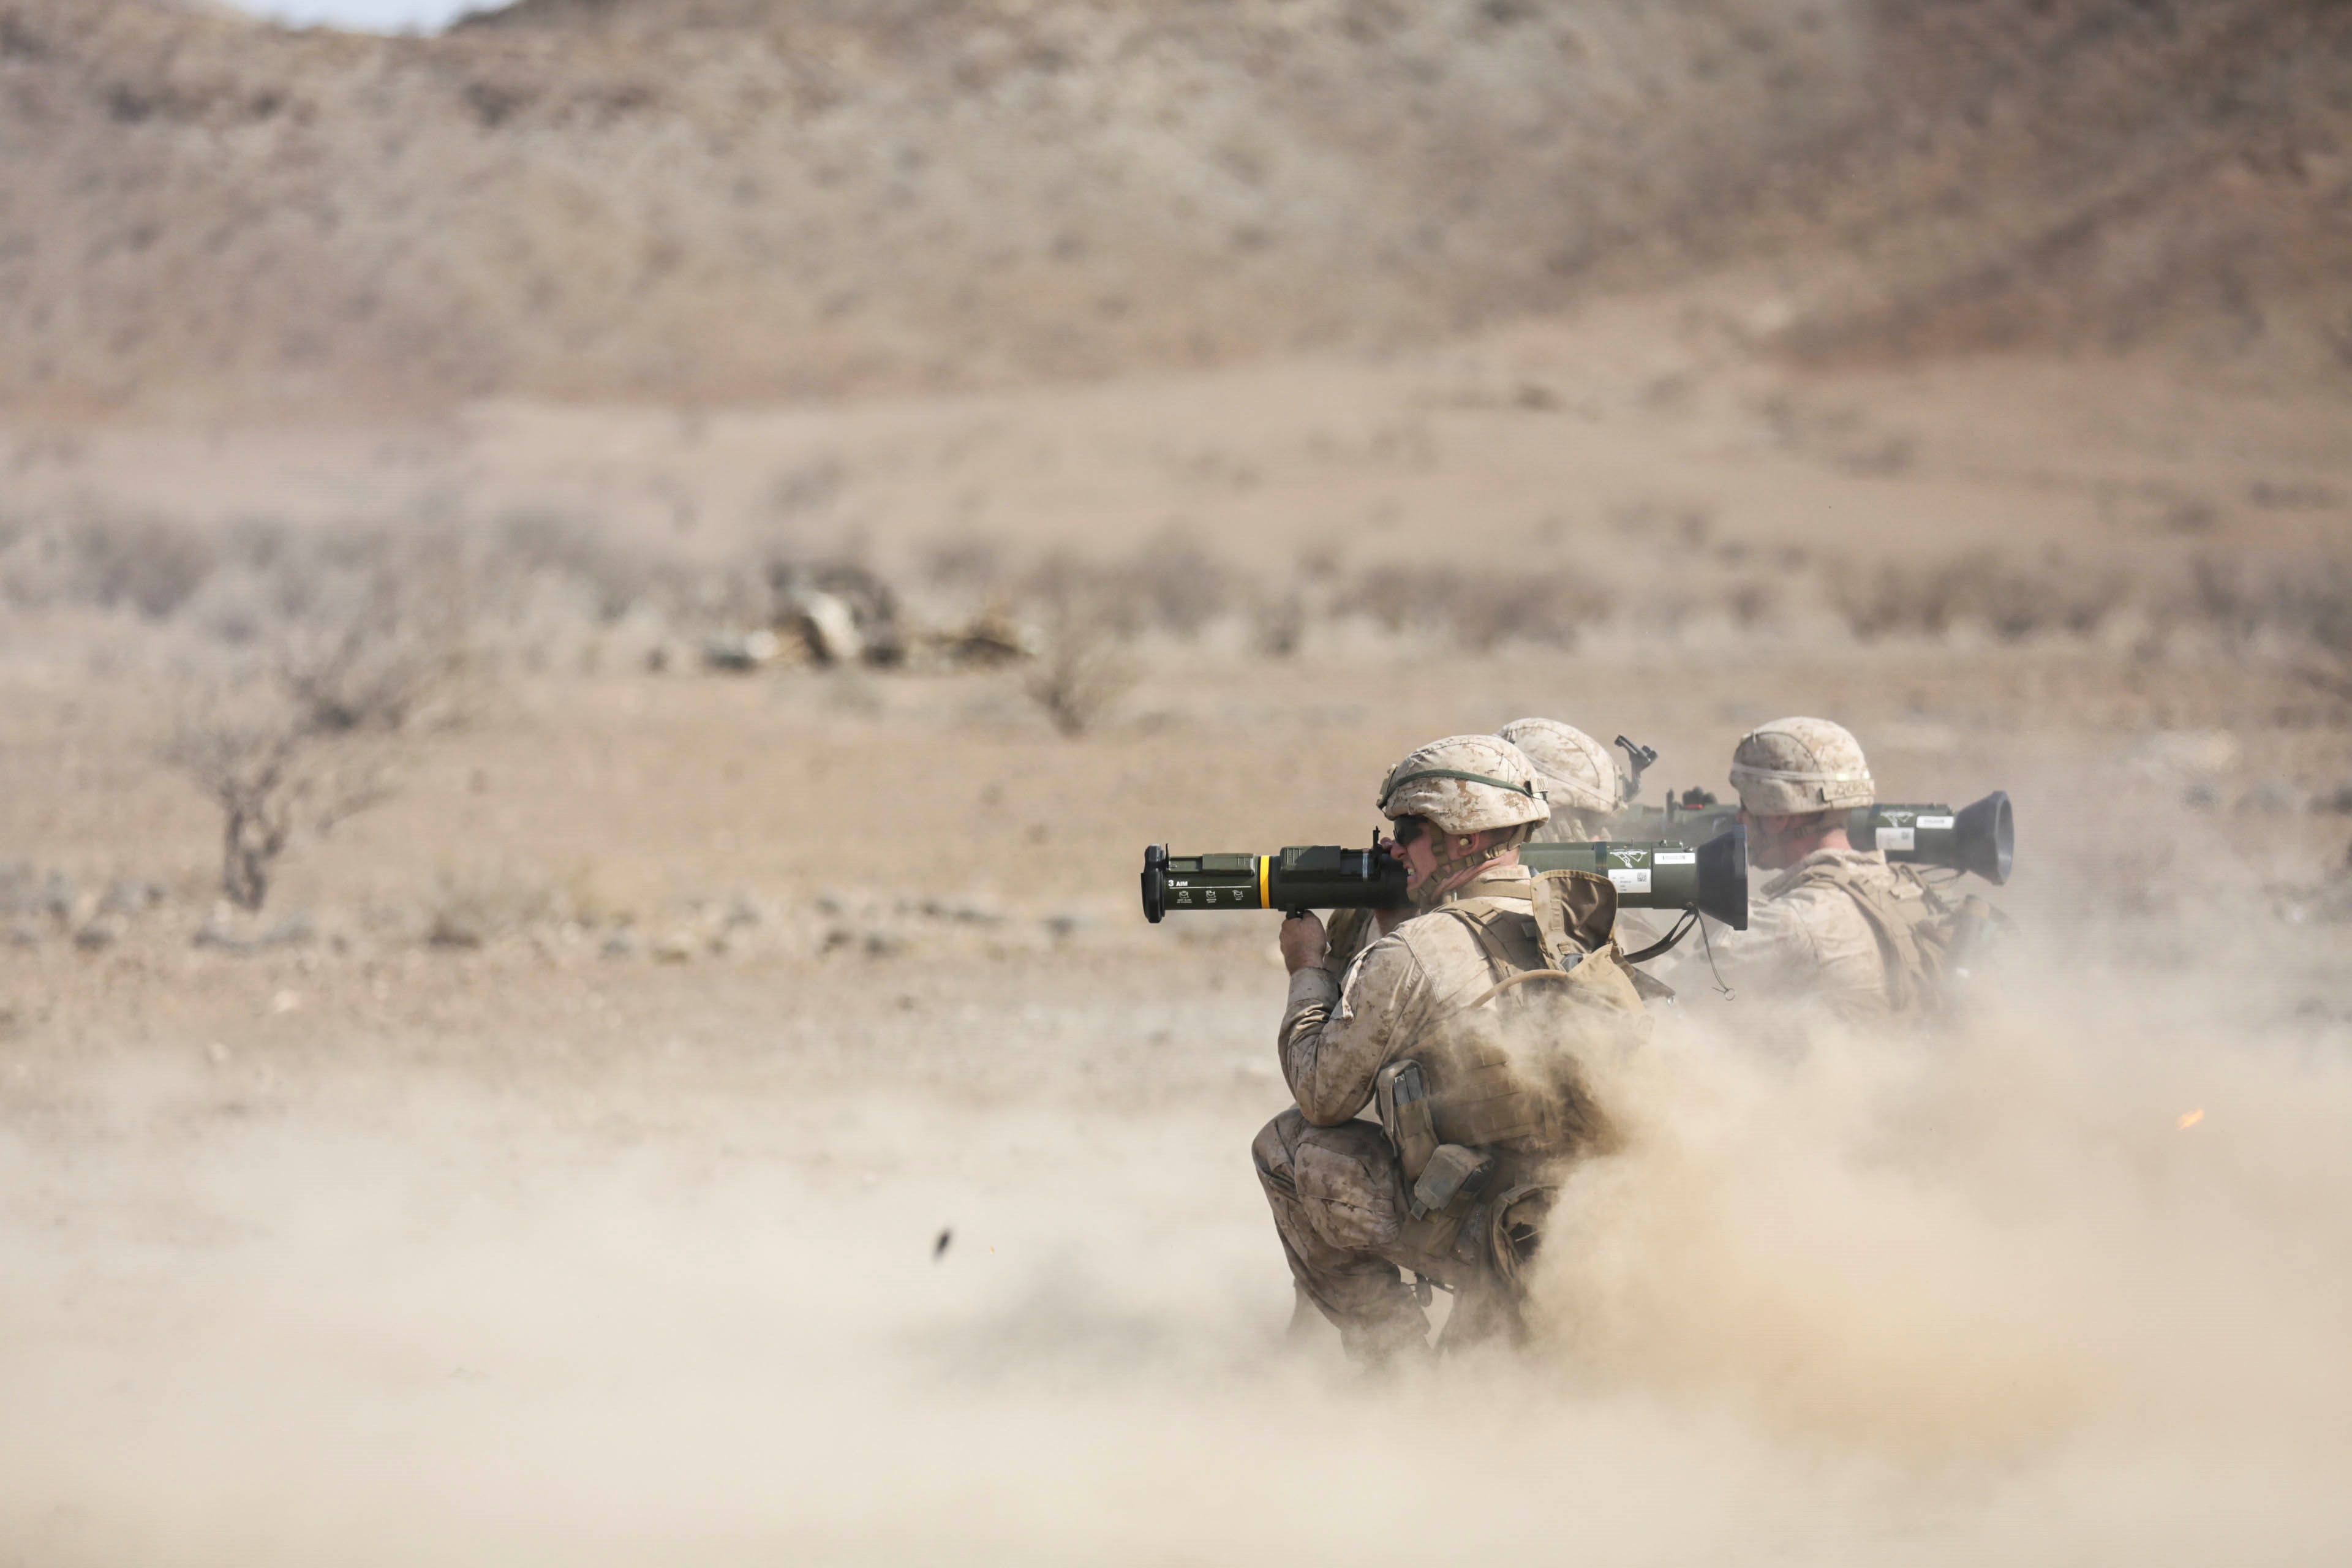 ARTA BEACH, Djibouti (July 22, 2015) U.S. Marines with Battalion Landing Team 3rd Battalion, 1st Marine Regiment, 15th Marine Expeditionary Unit, fire AT-4 rockets during a rocket training exercise.  Elements of the 15th Marine Expeditionary Unit are ashore in Djibouti for sustainment training to maintain and enhance the skills they developed during their pre-deployment training period.  The 15th MEU is currently deployed conducting maritime security operations in the 5th and 6th Fleet areas of responsibility.  (U.S. Marine Corps photo by Sgt. Jamean Berry/Released)